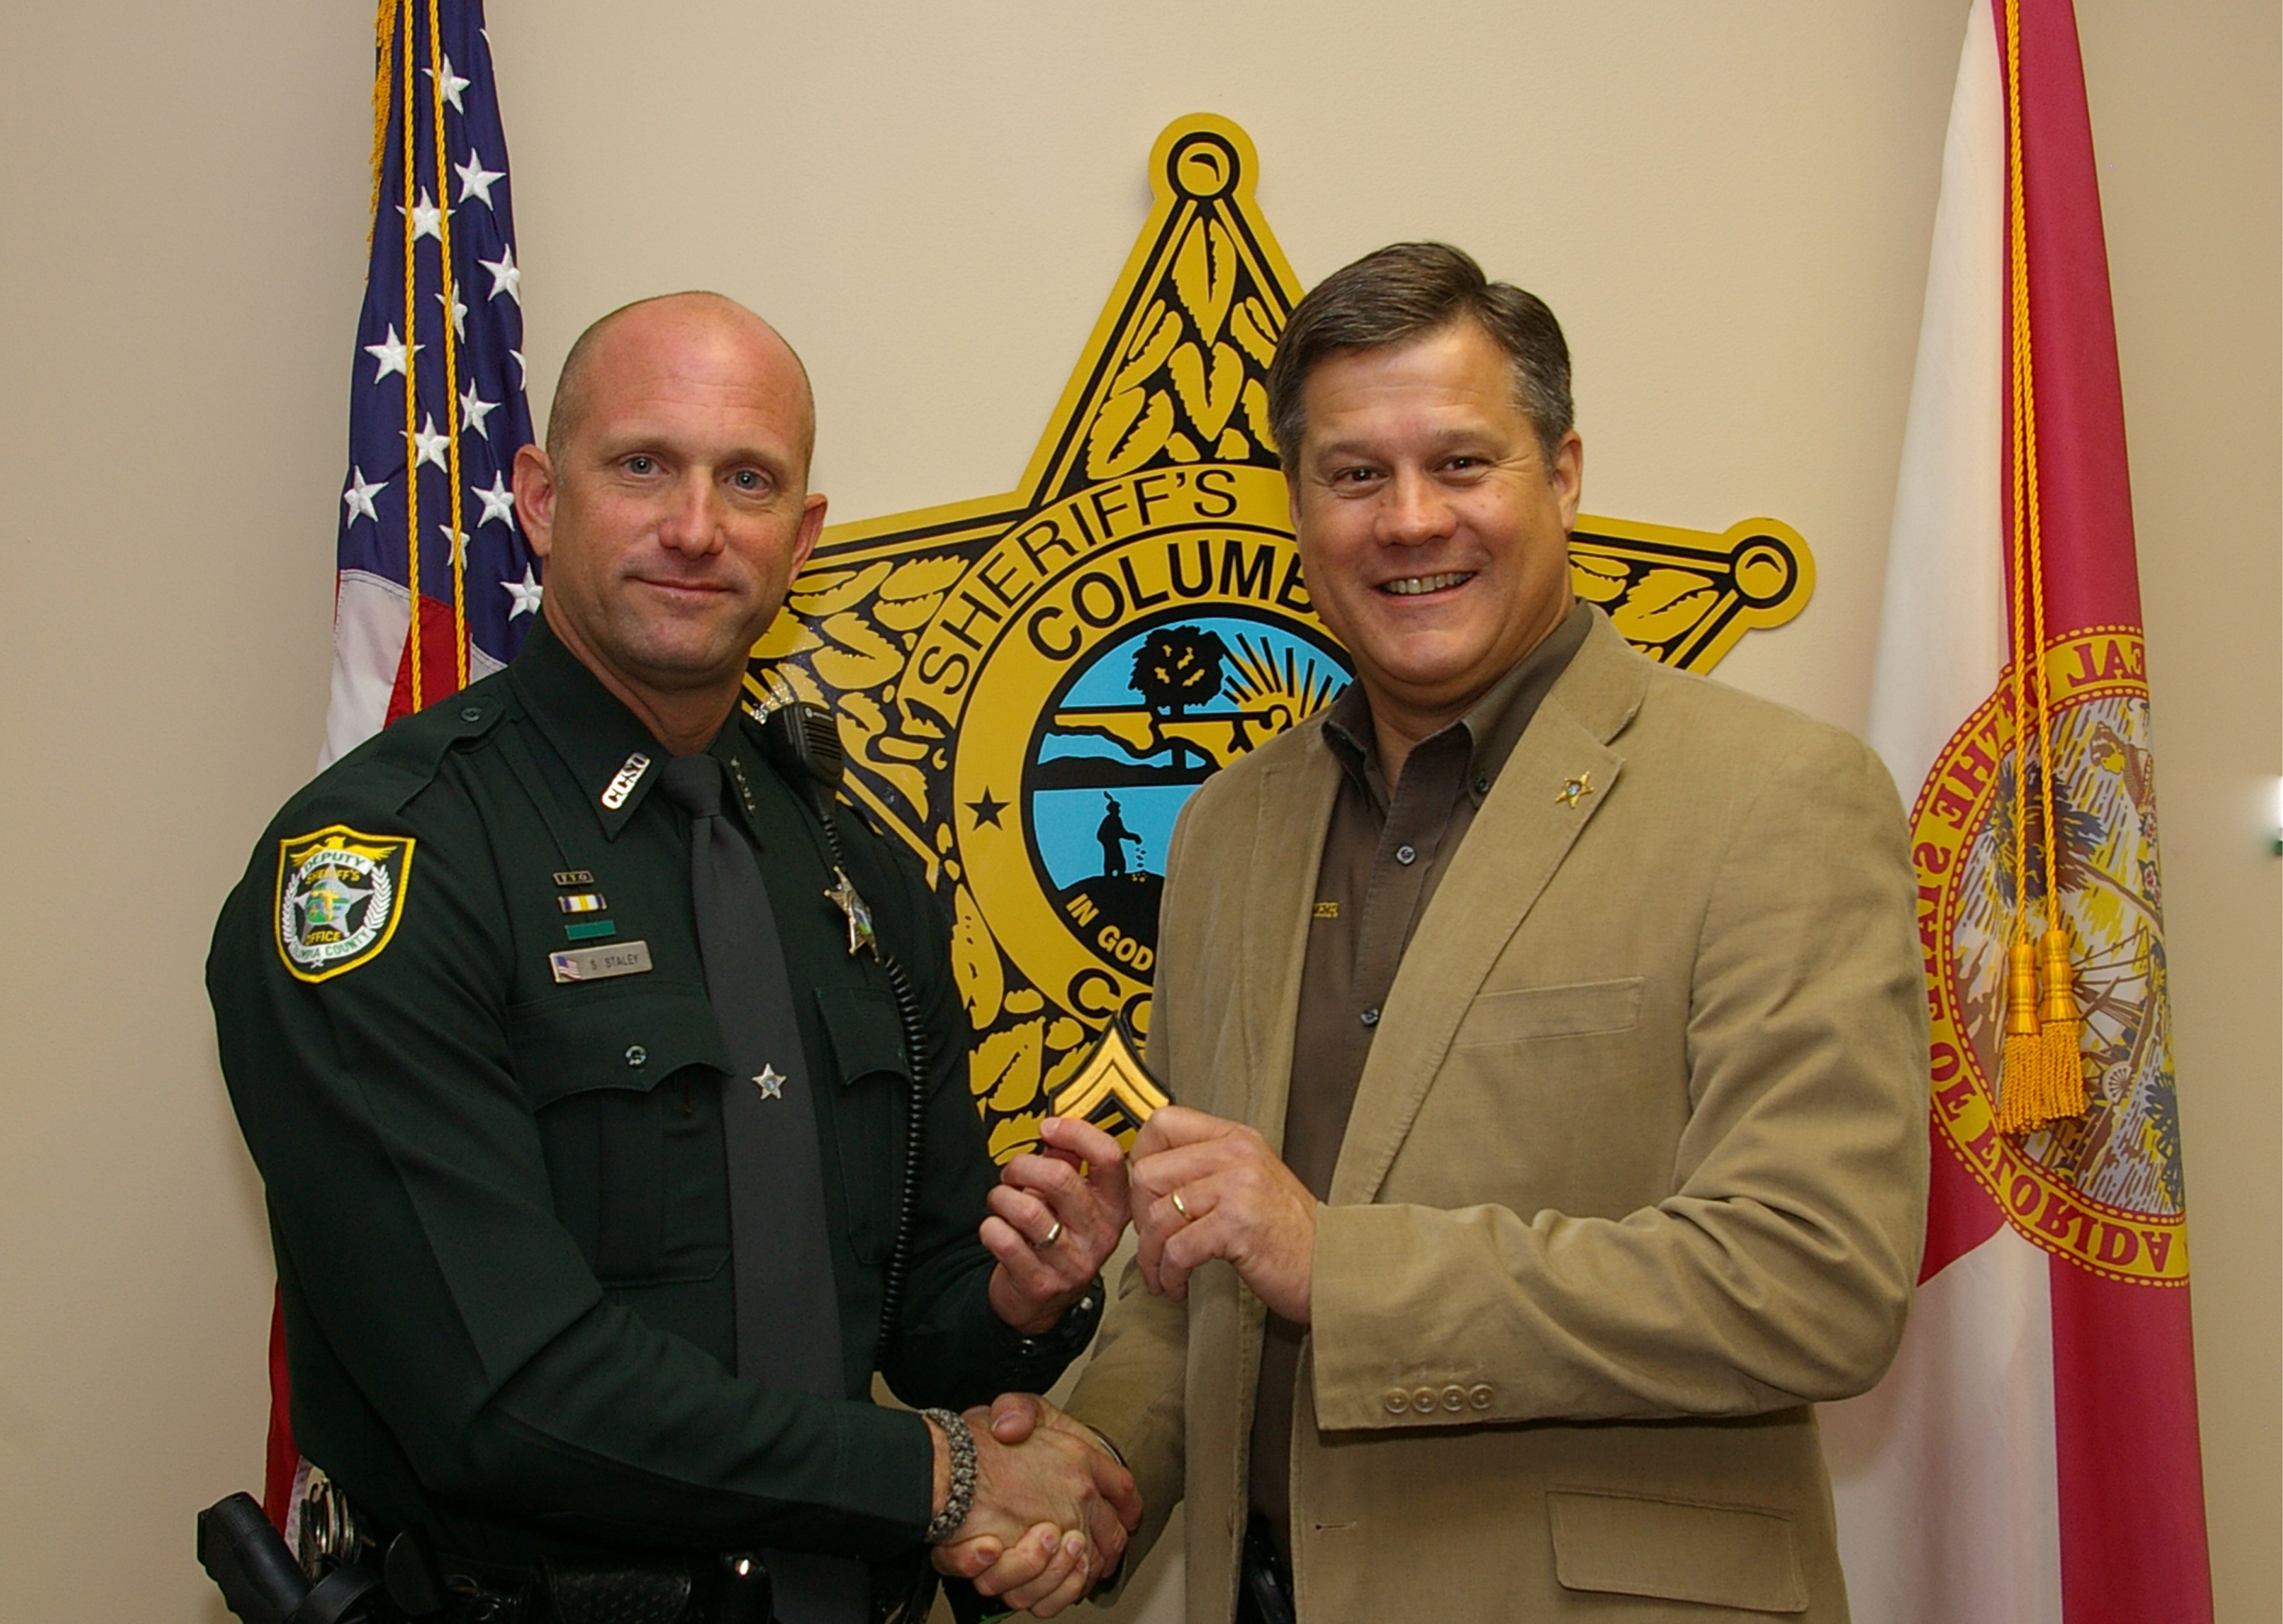 Corporal Scott Staley and Sheriff Mark Hunter